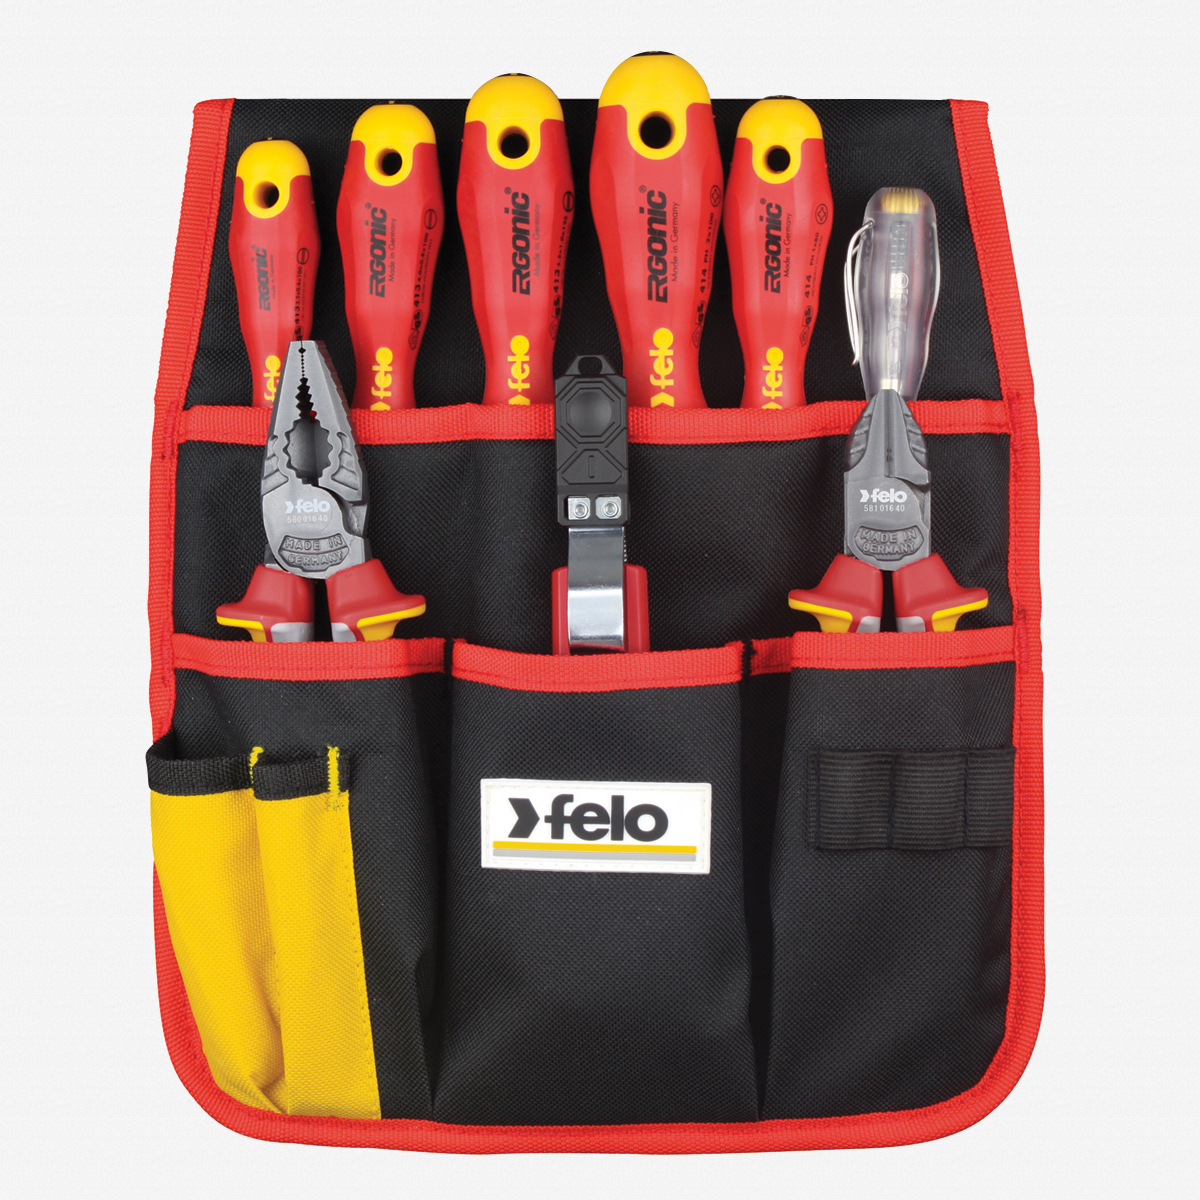 Felo 63859 9 Piece Insulated Belt Pouch Set - KC Tool